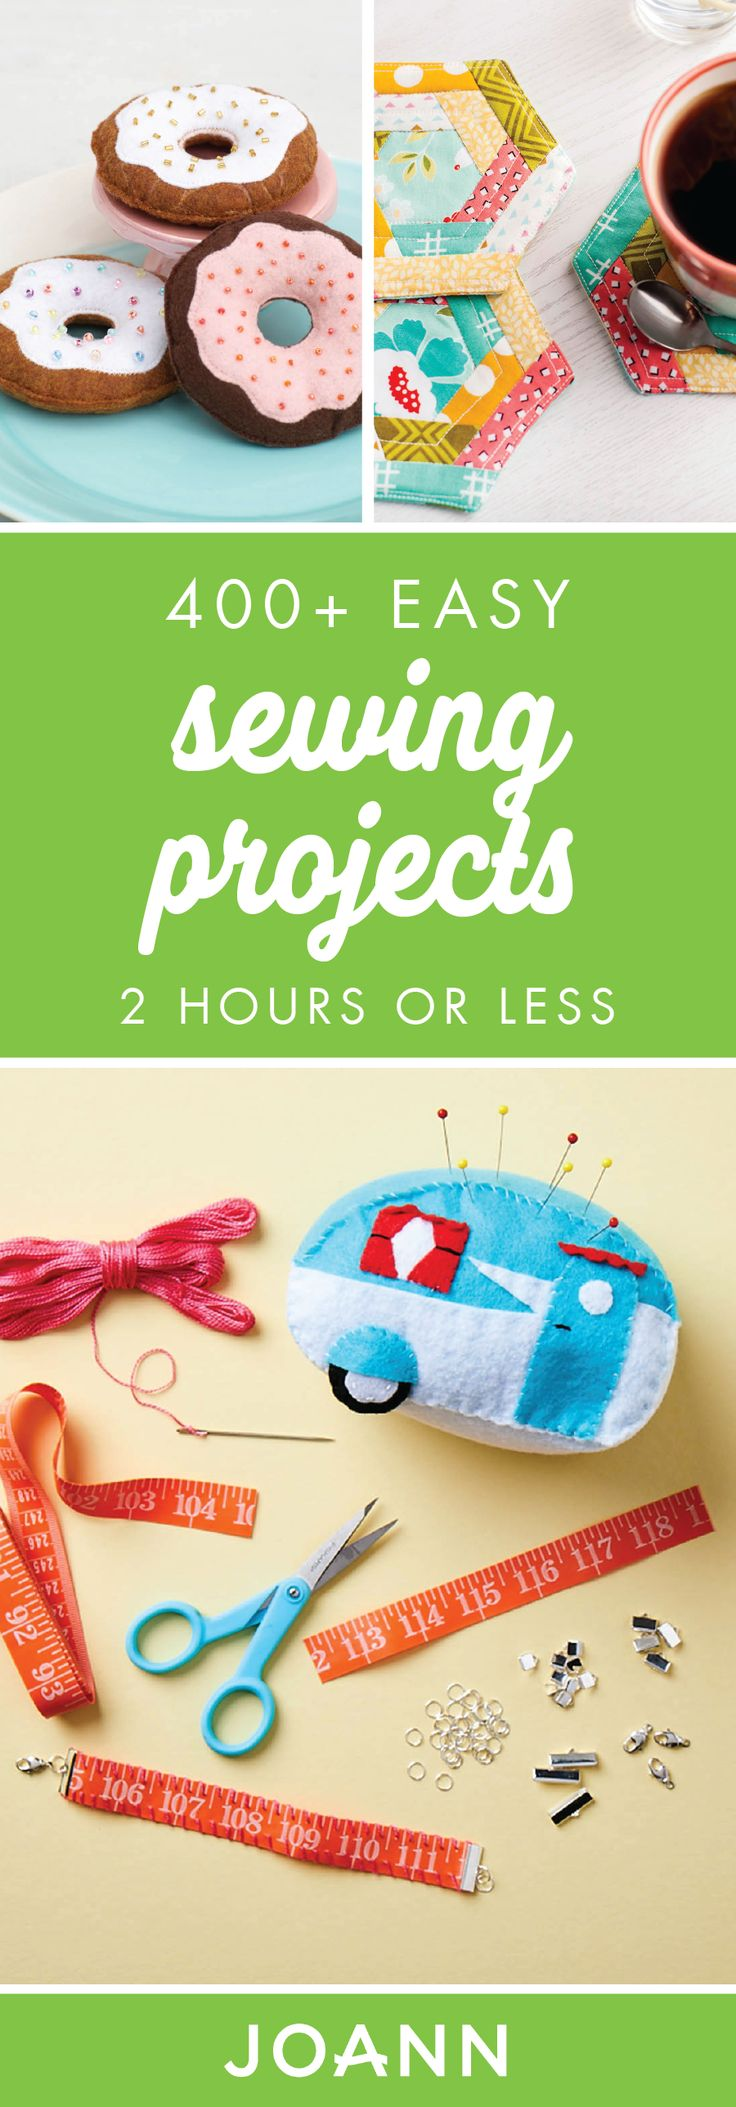 best sewing images on pinterest sewing ideas embroidery and